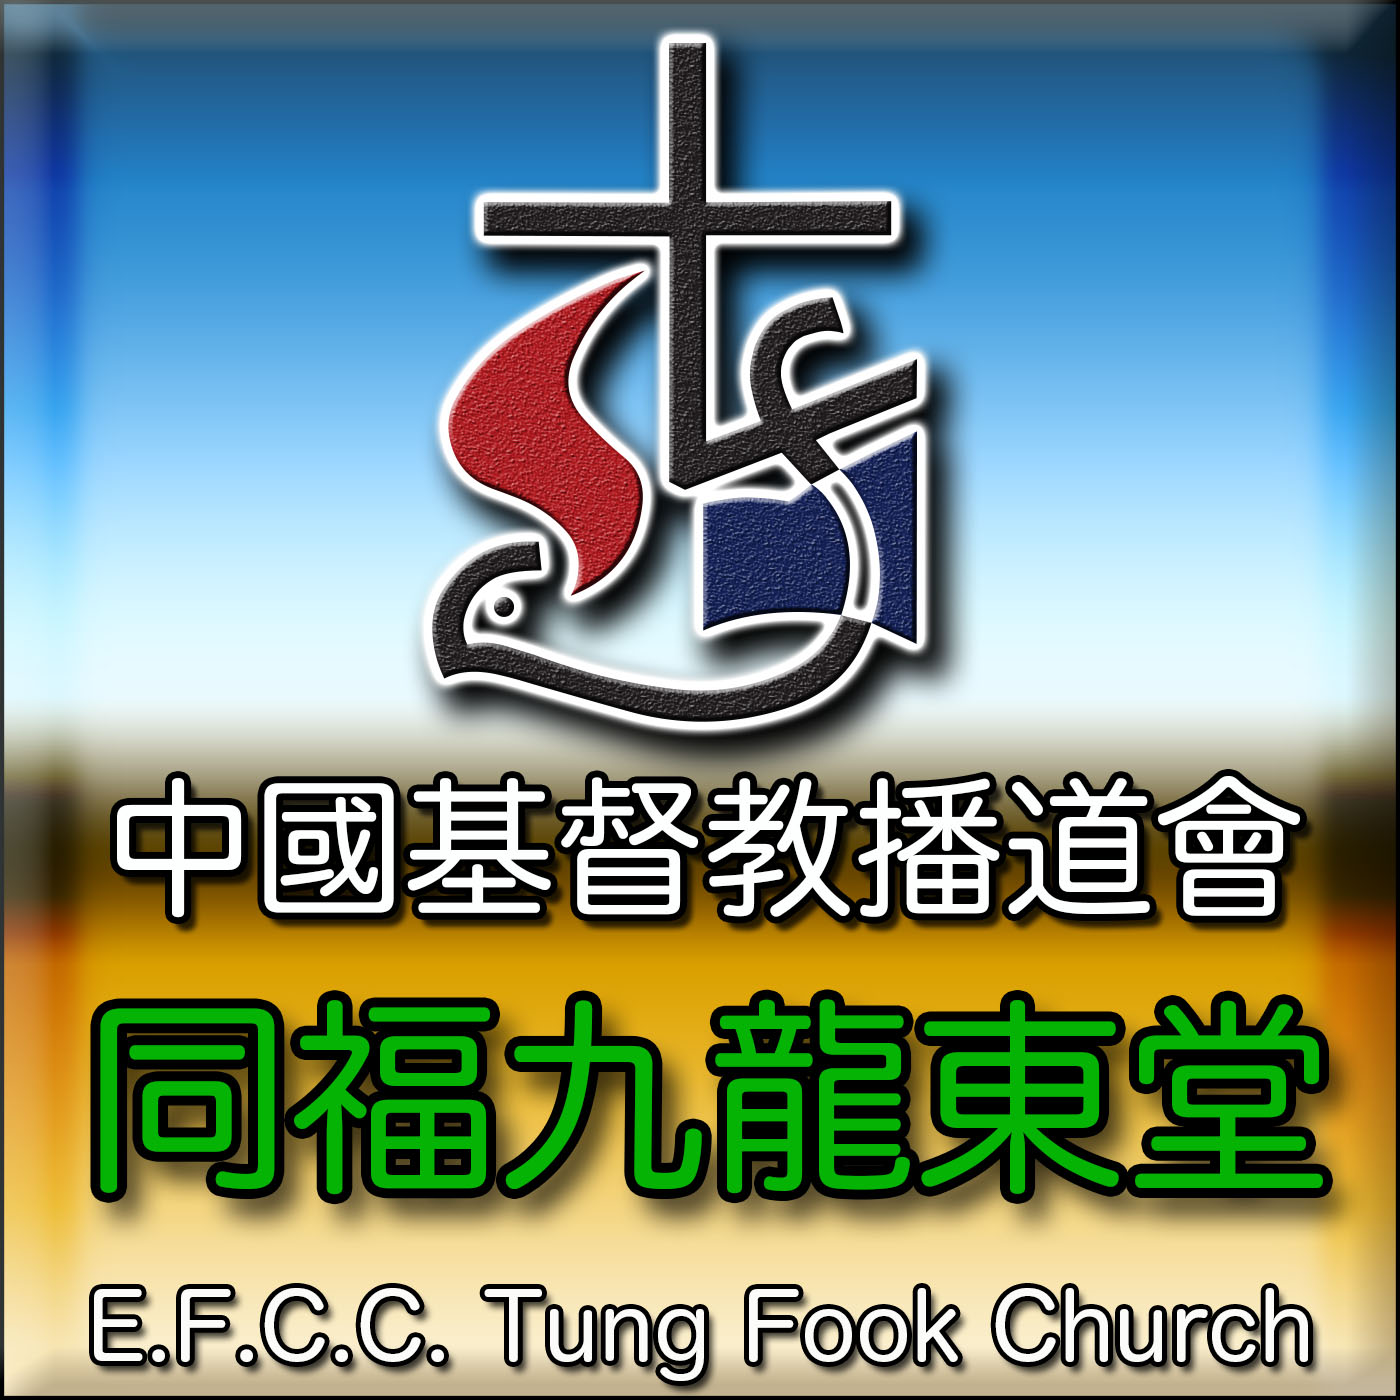 同福九龍東堂 Tung Fook Kowloon East Church